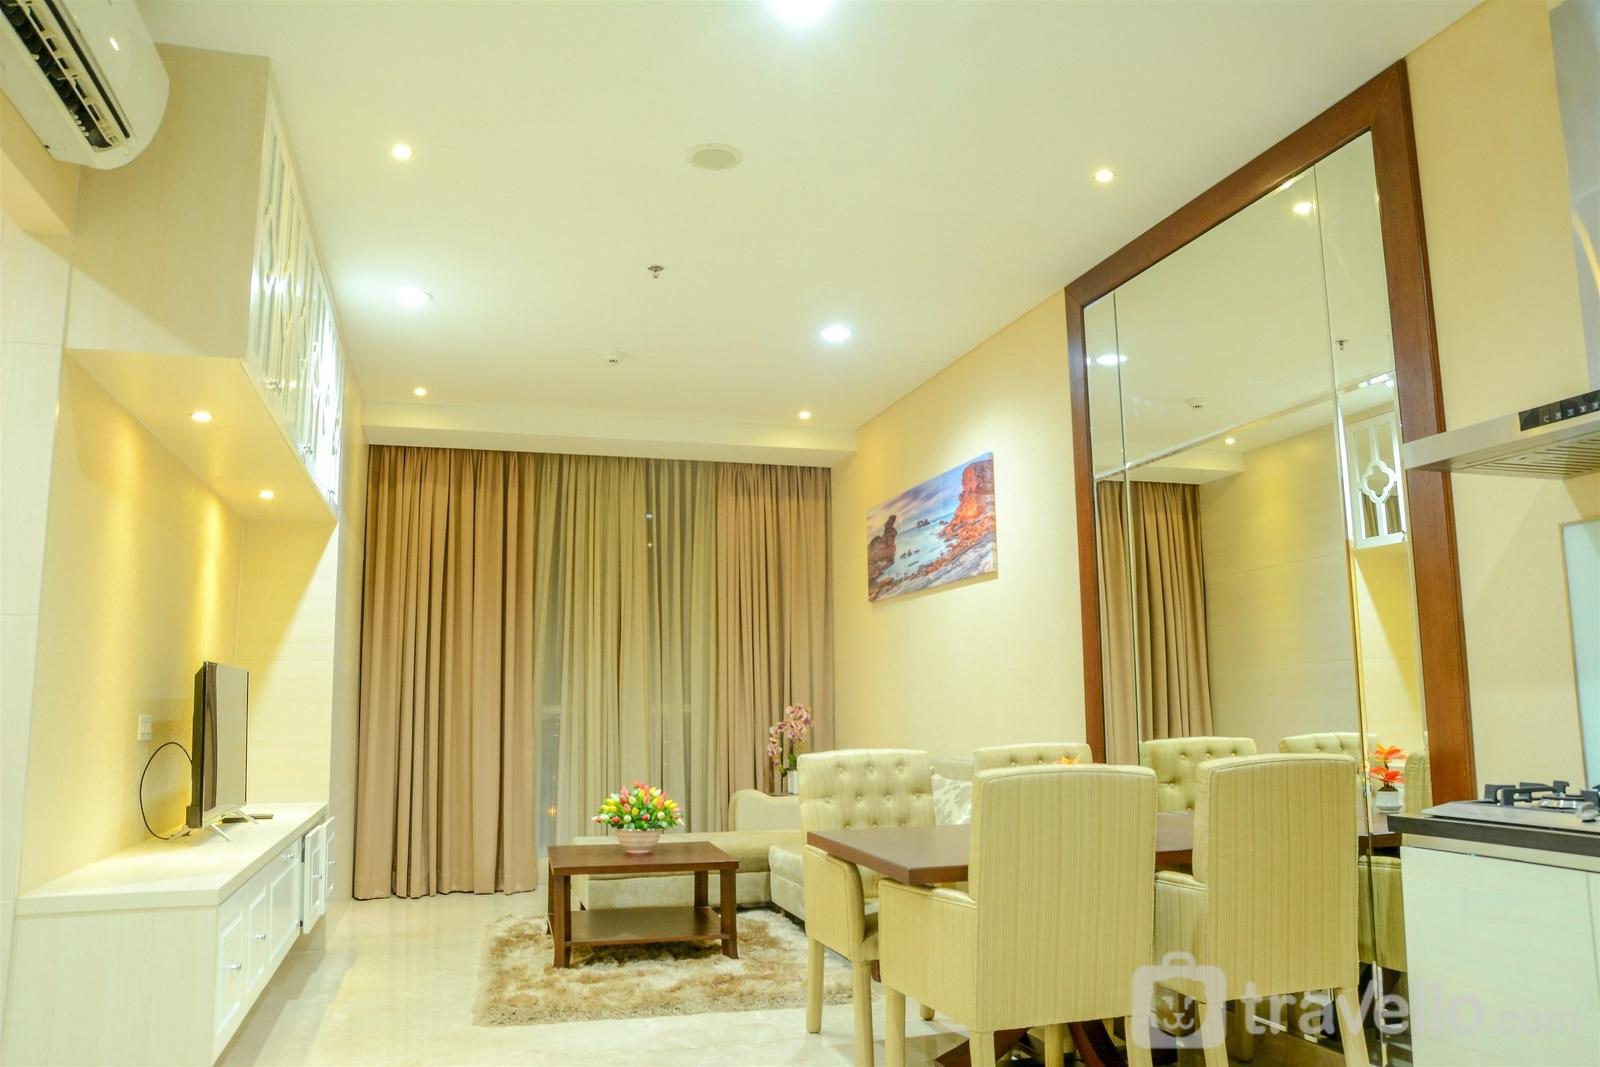 Four Winds - Spacious 2BR Four Winds Apartment with City View By Travelio